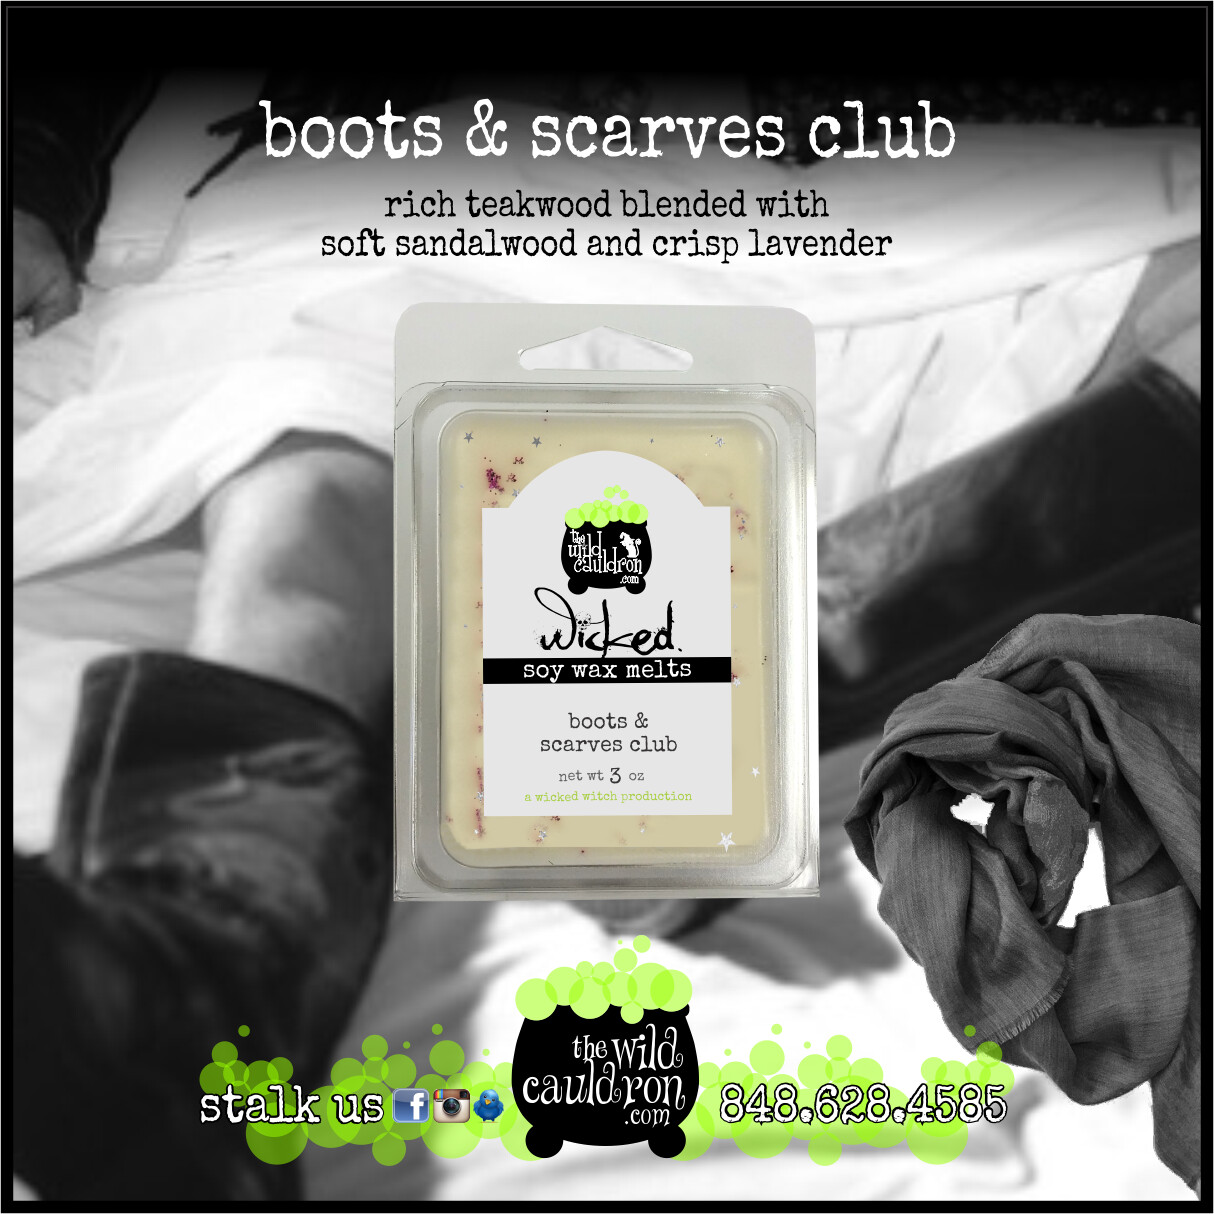 Boots & Scarves Club Wicked Wax Melts